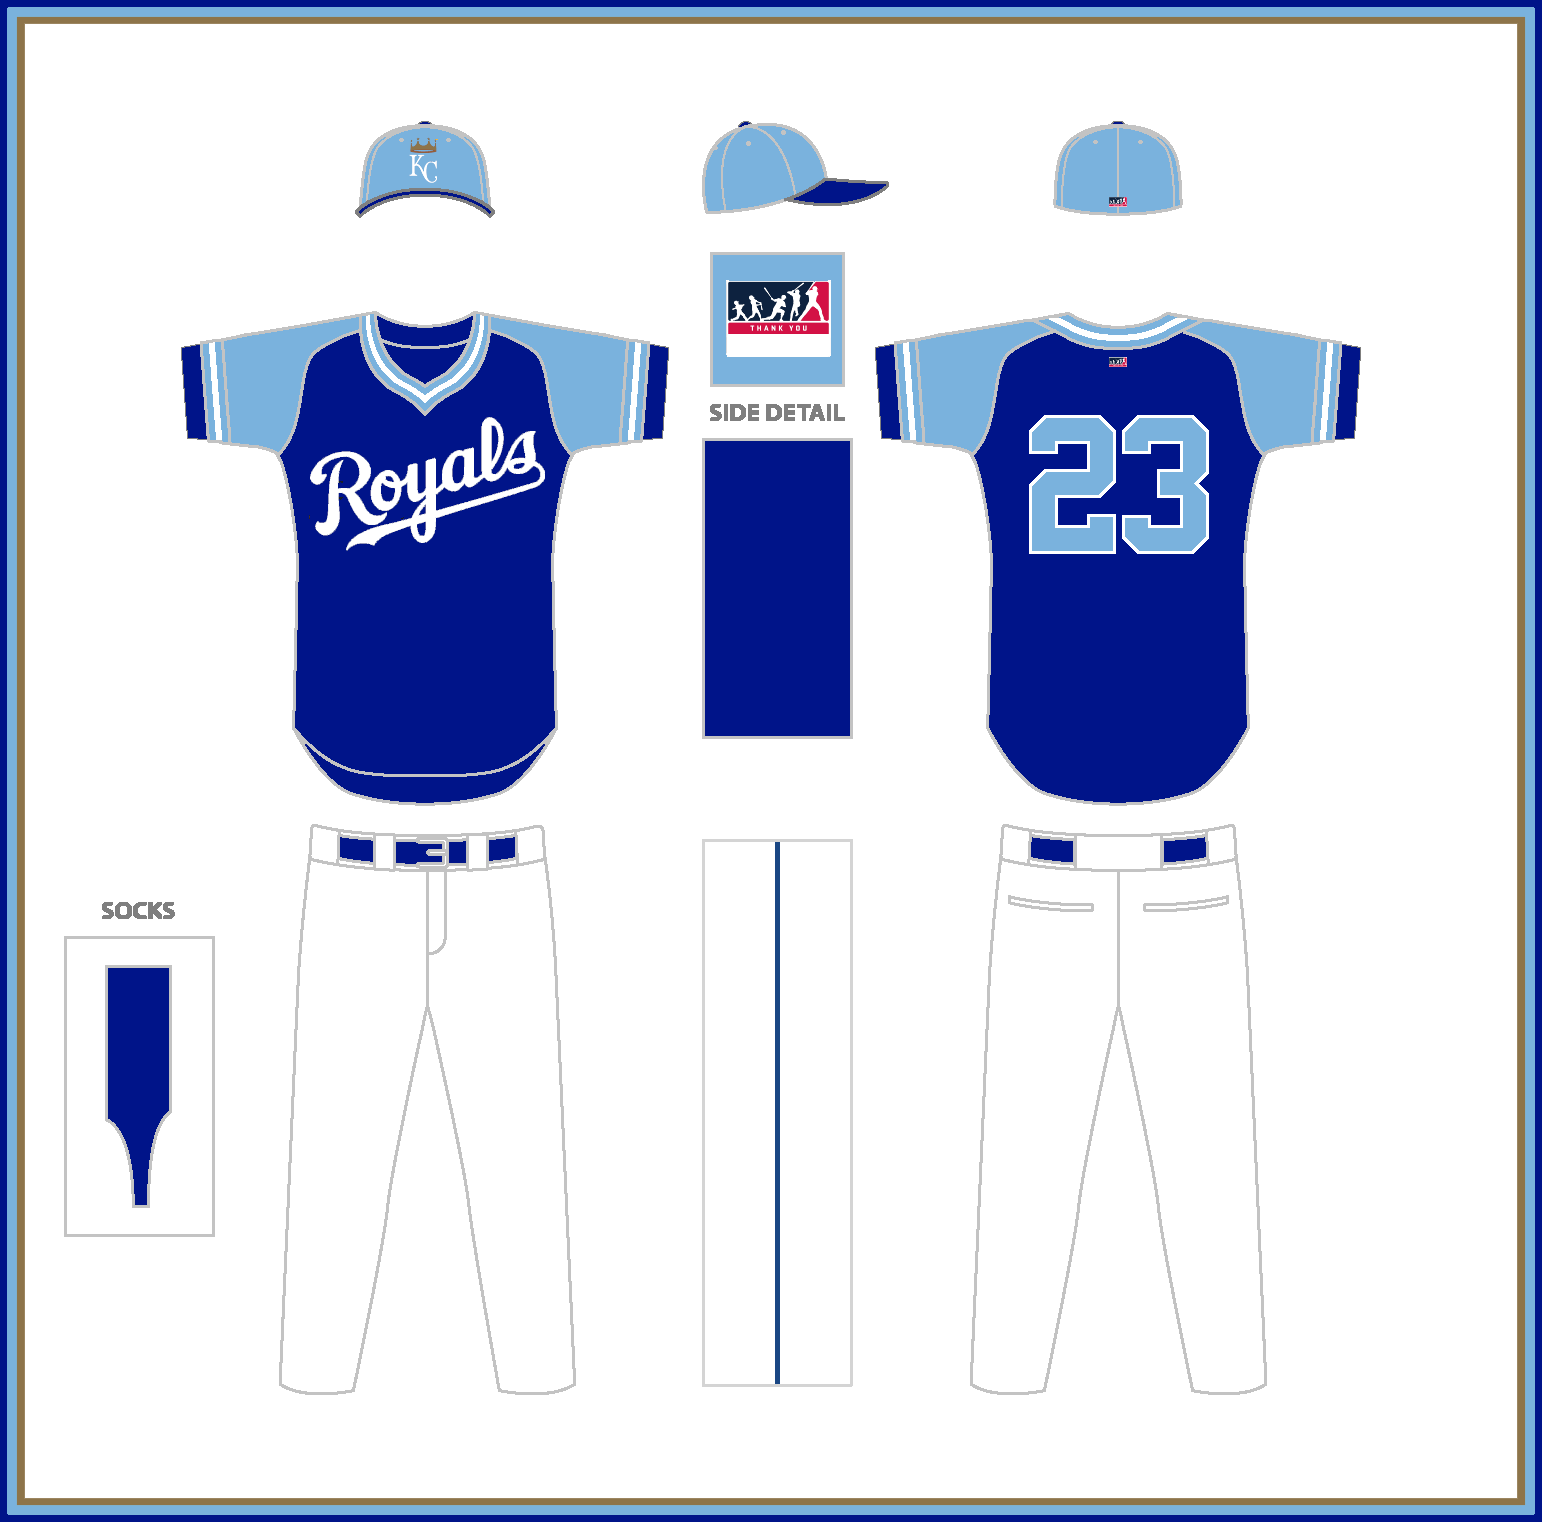 Royals_w_outline.png